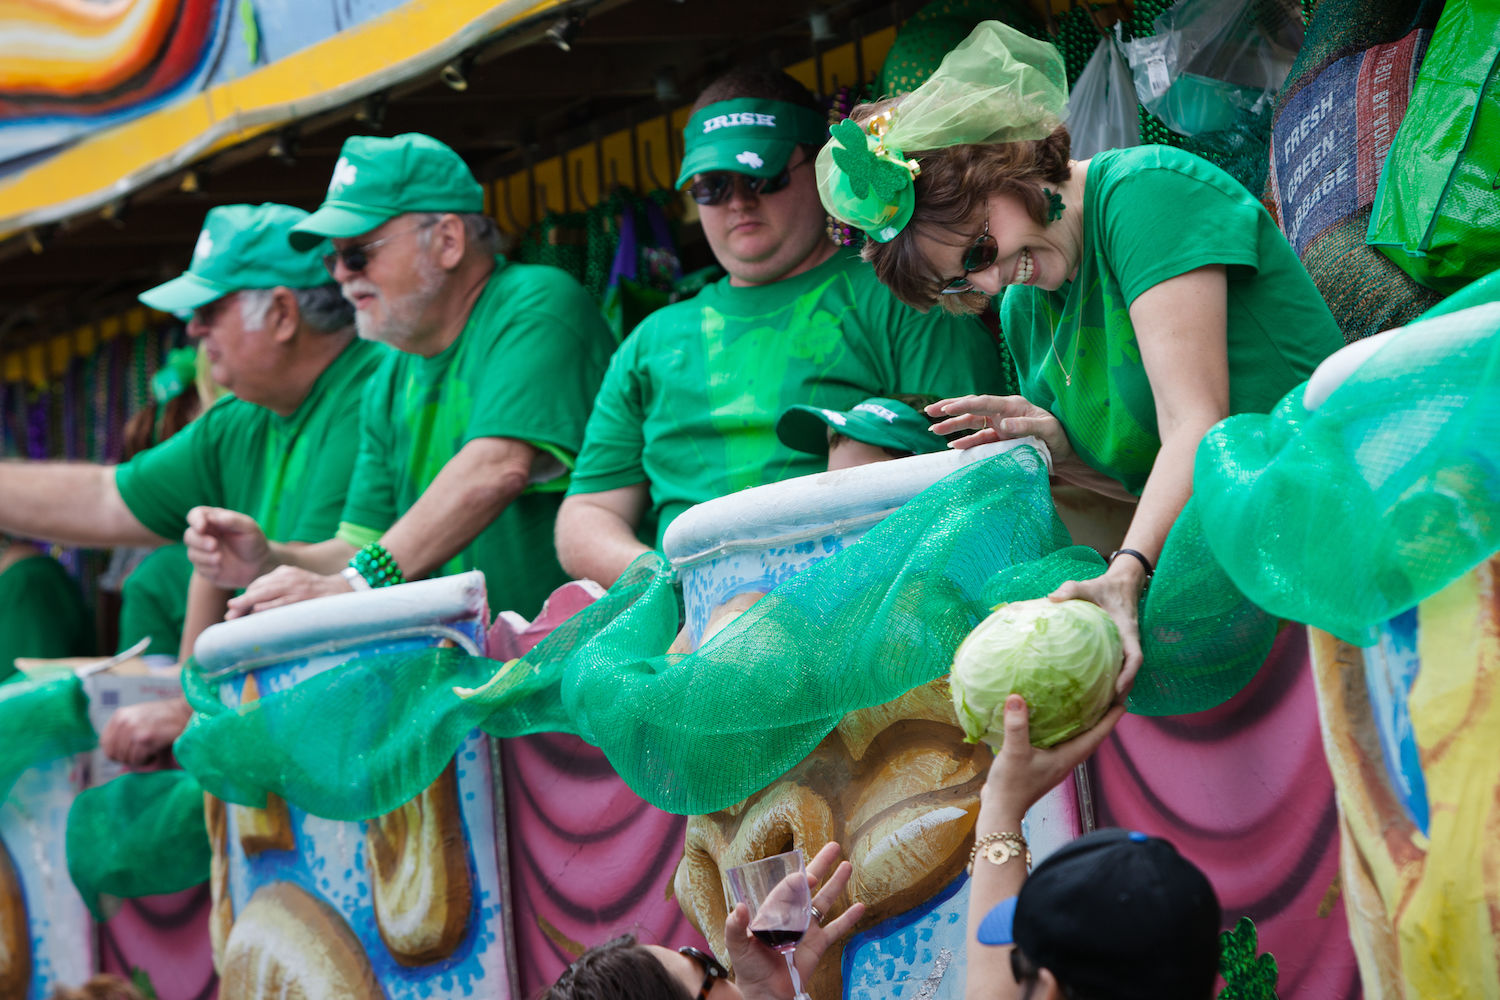 New Orleans Celebrates St. Patrick's Day in an Unusual Way